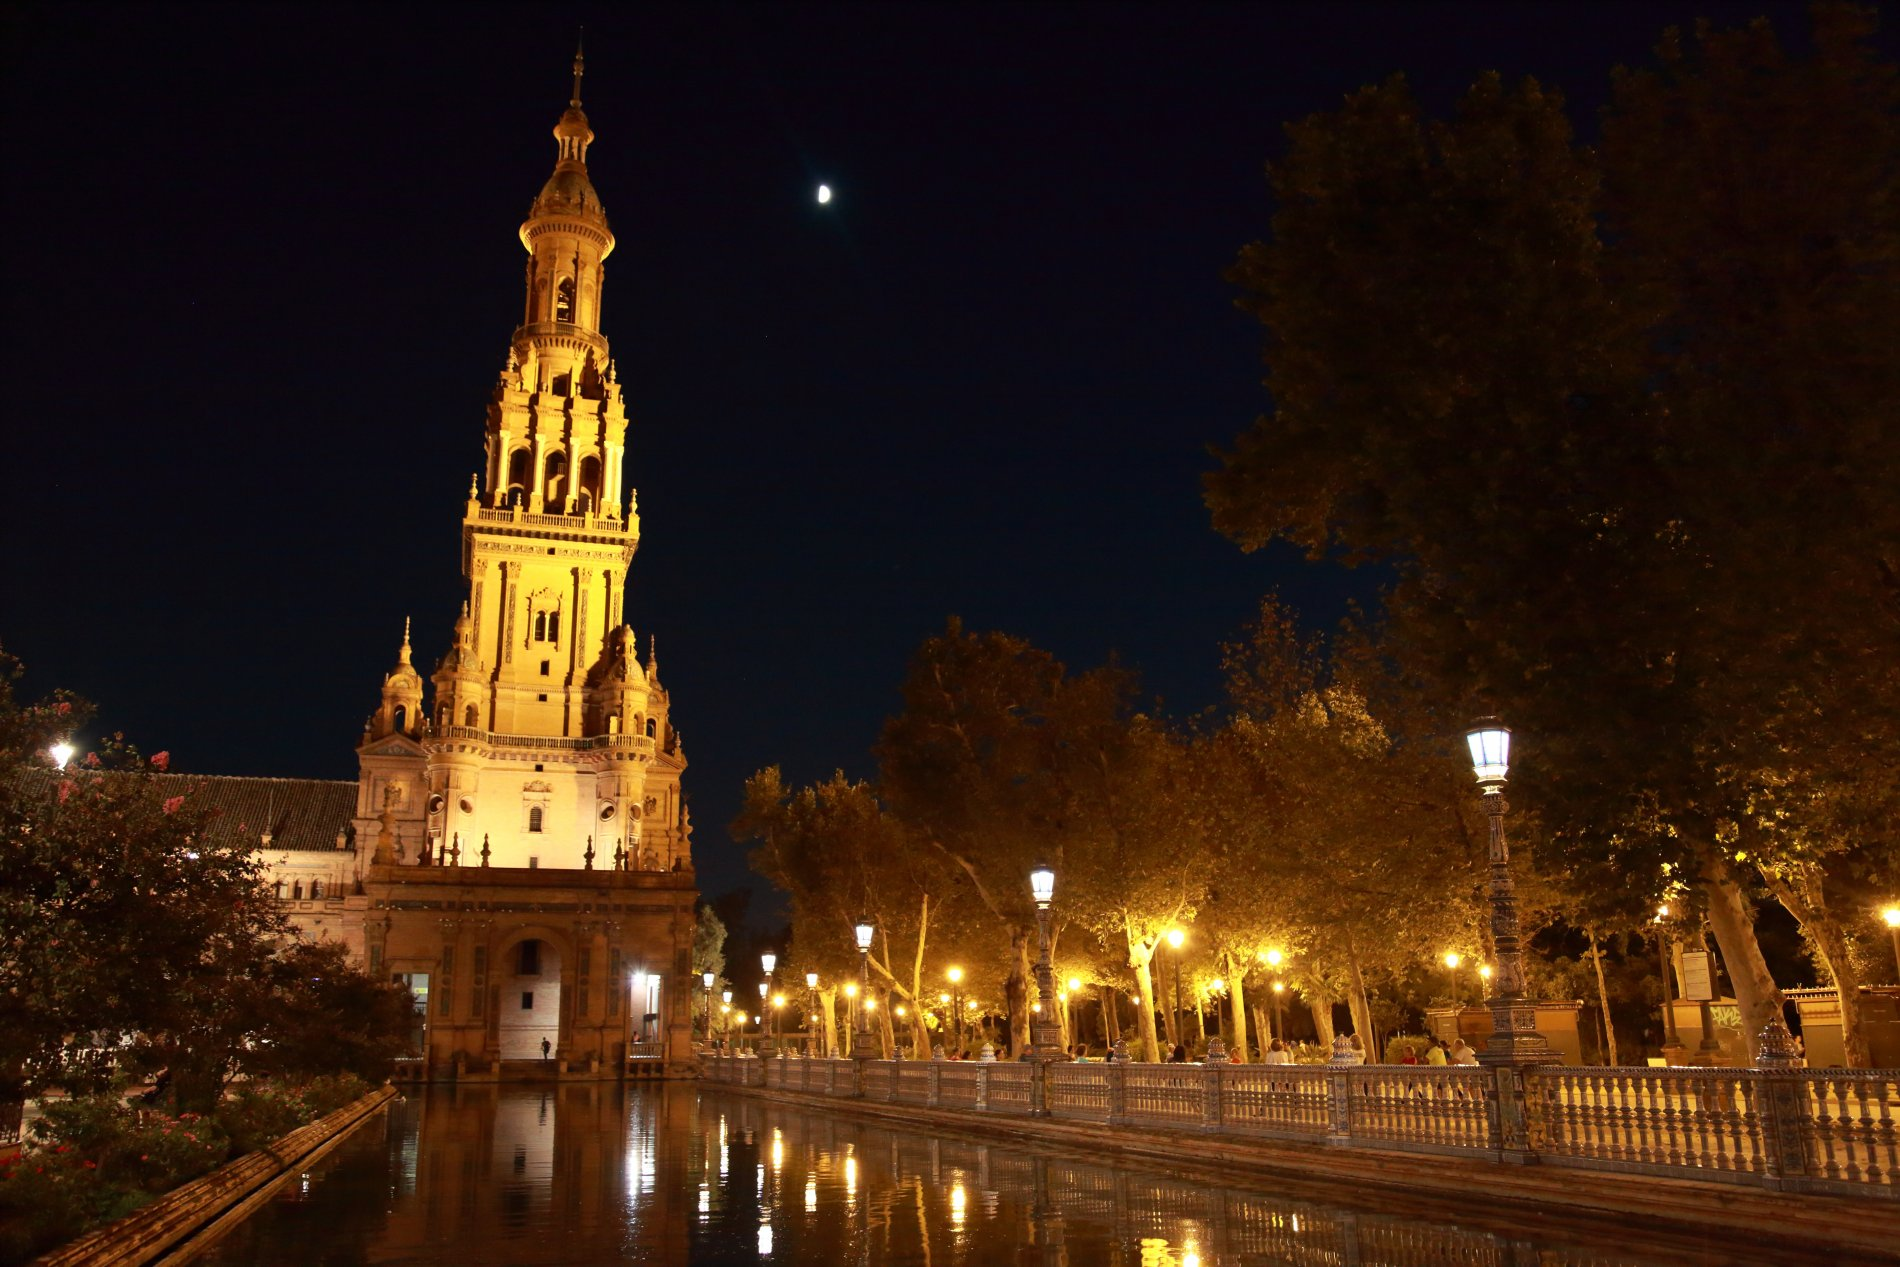 Seville-87.JPG-commment